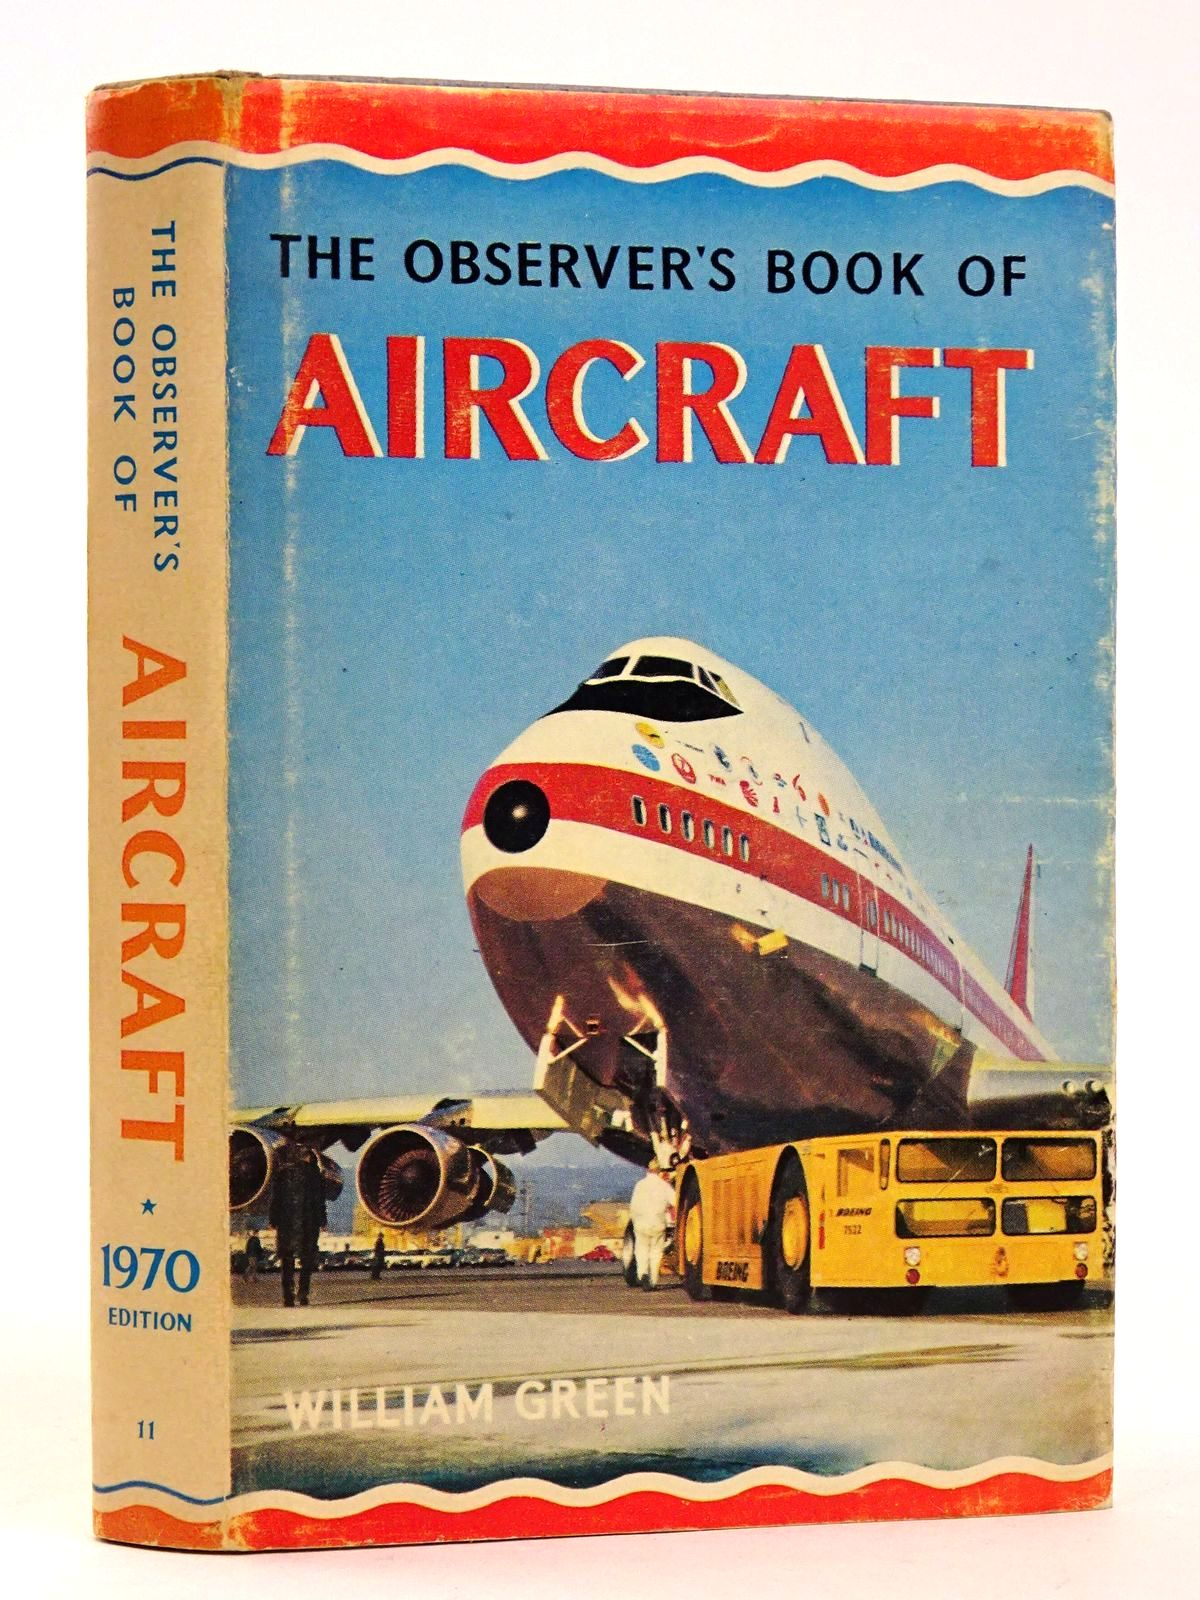 Photo of THE OBSERVER'S BOOK OF AIRCRAFT written by Green, William illustrated by Punnett, Dennis published by Frederick Warne & Co Ltd. (STOCK CODE: 1818551)  for sale by Stella & Rose's Books